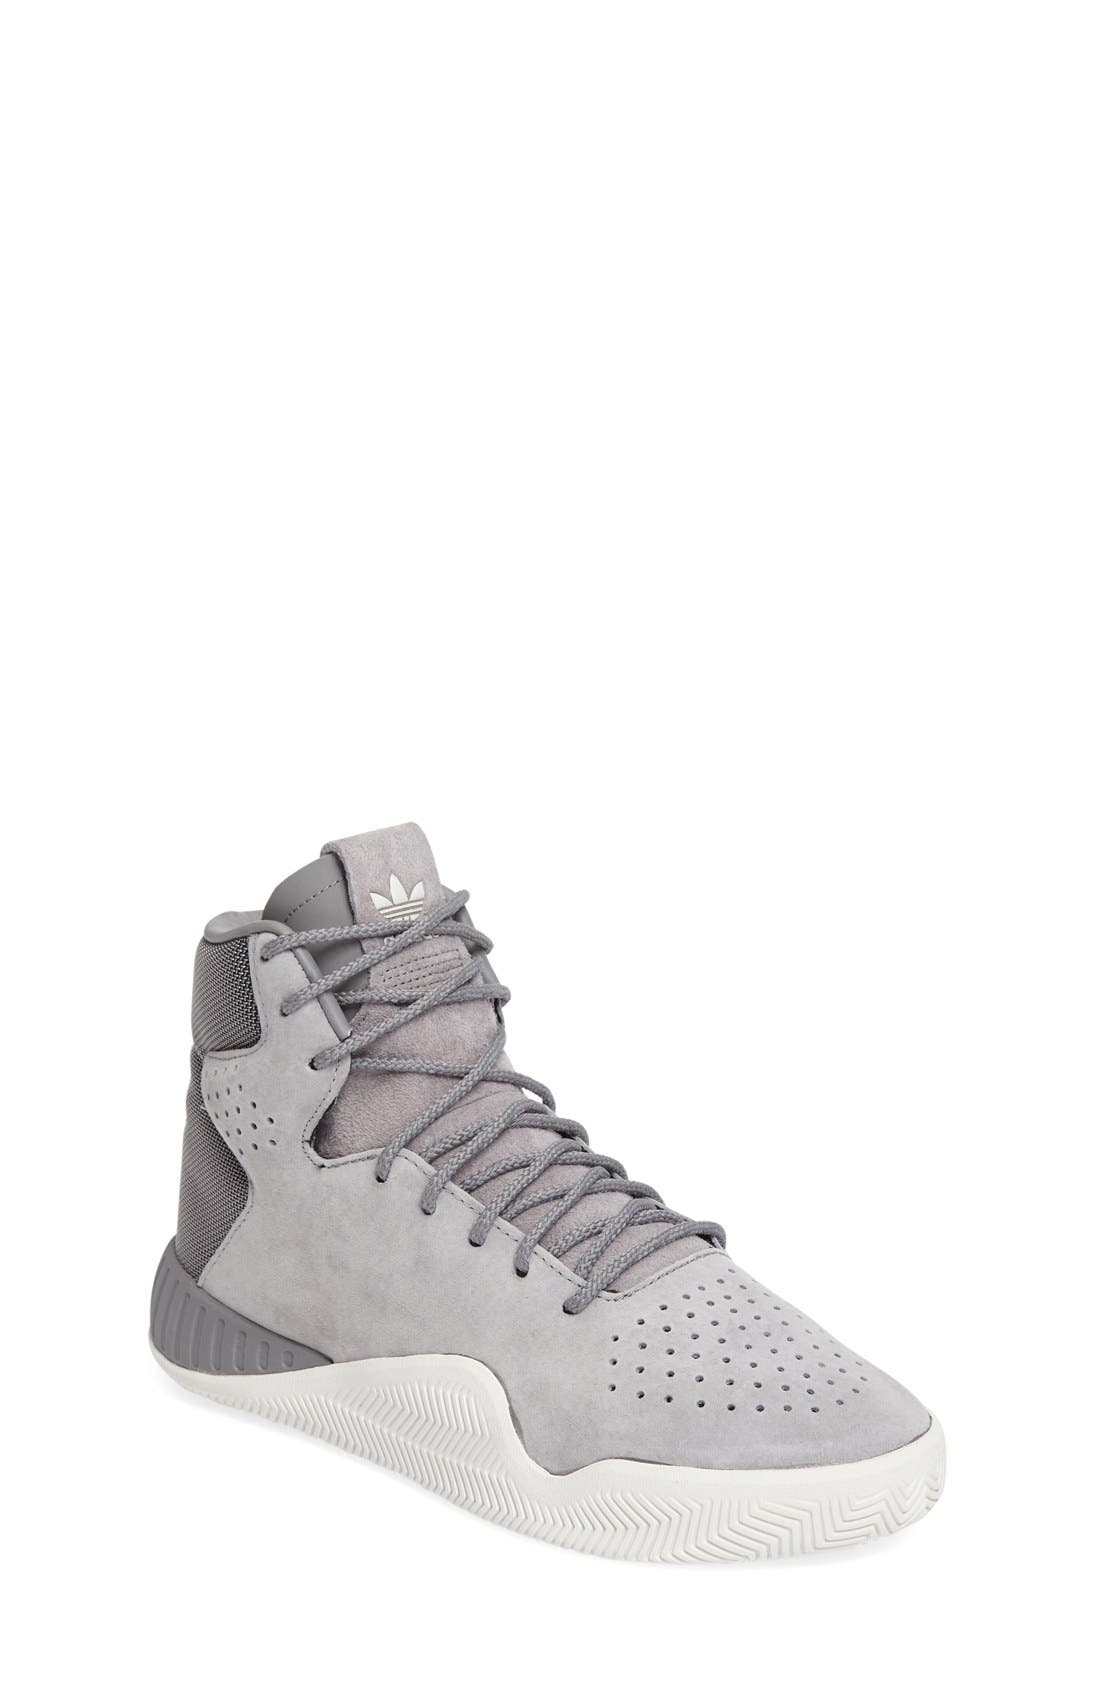 ADIDAS Tubular Instinct High Top Sneaker